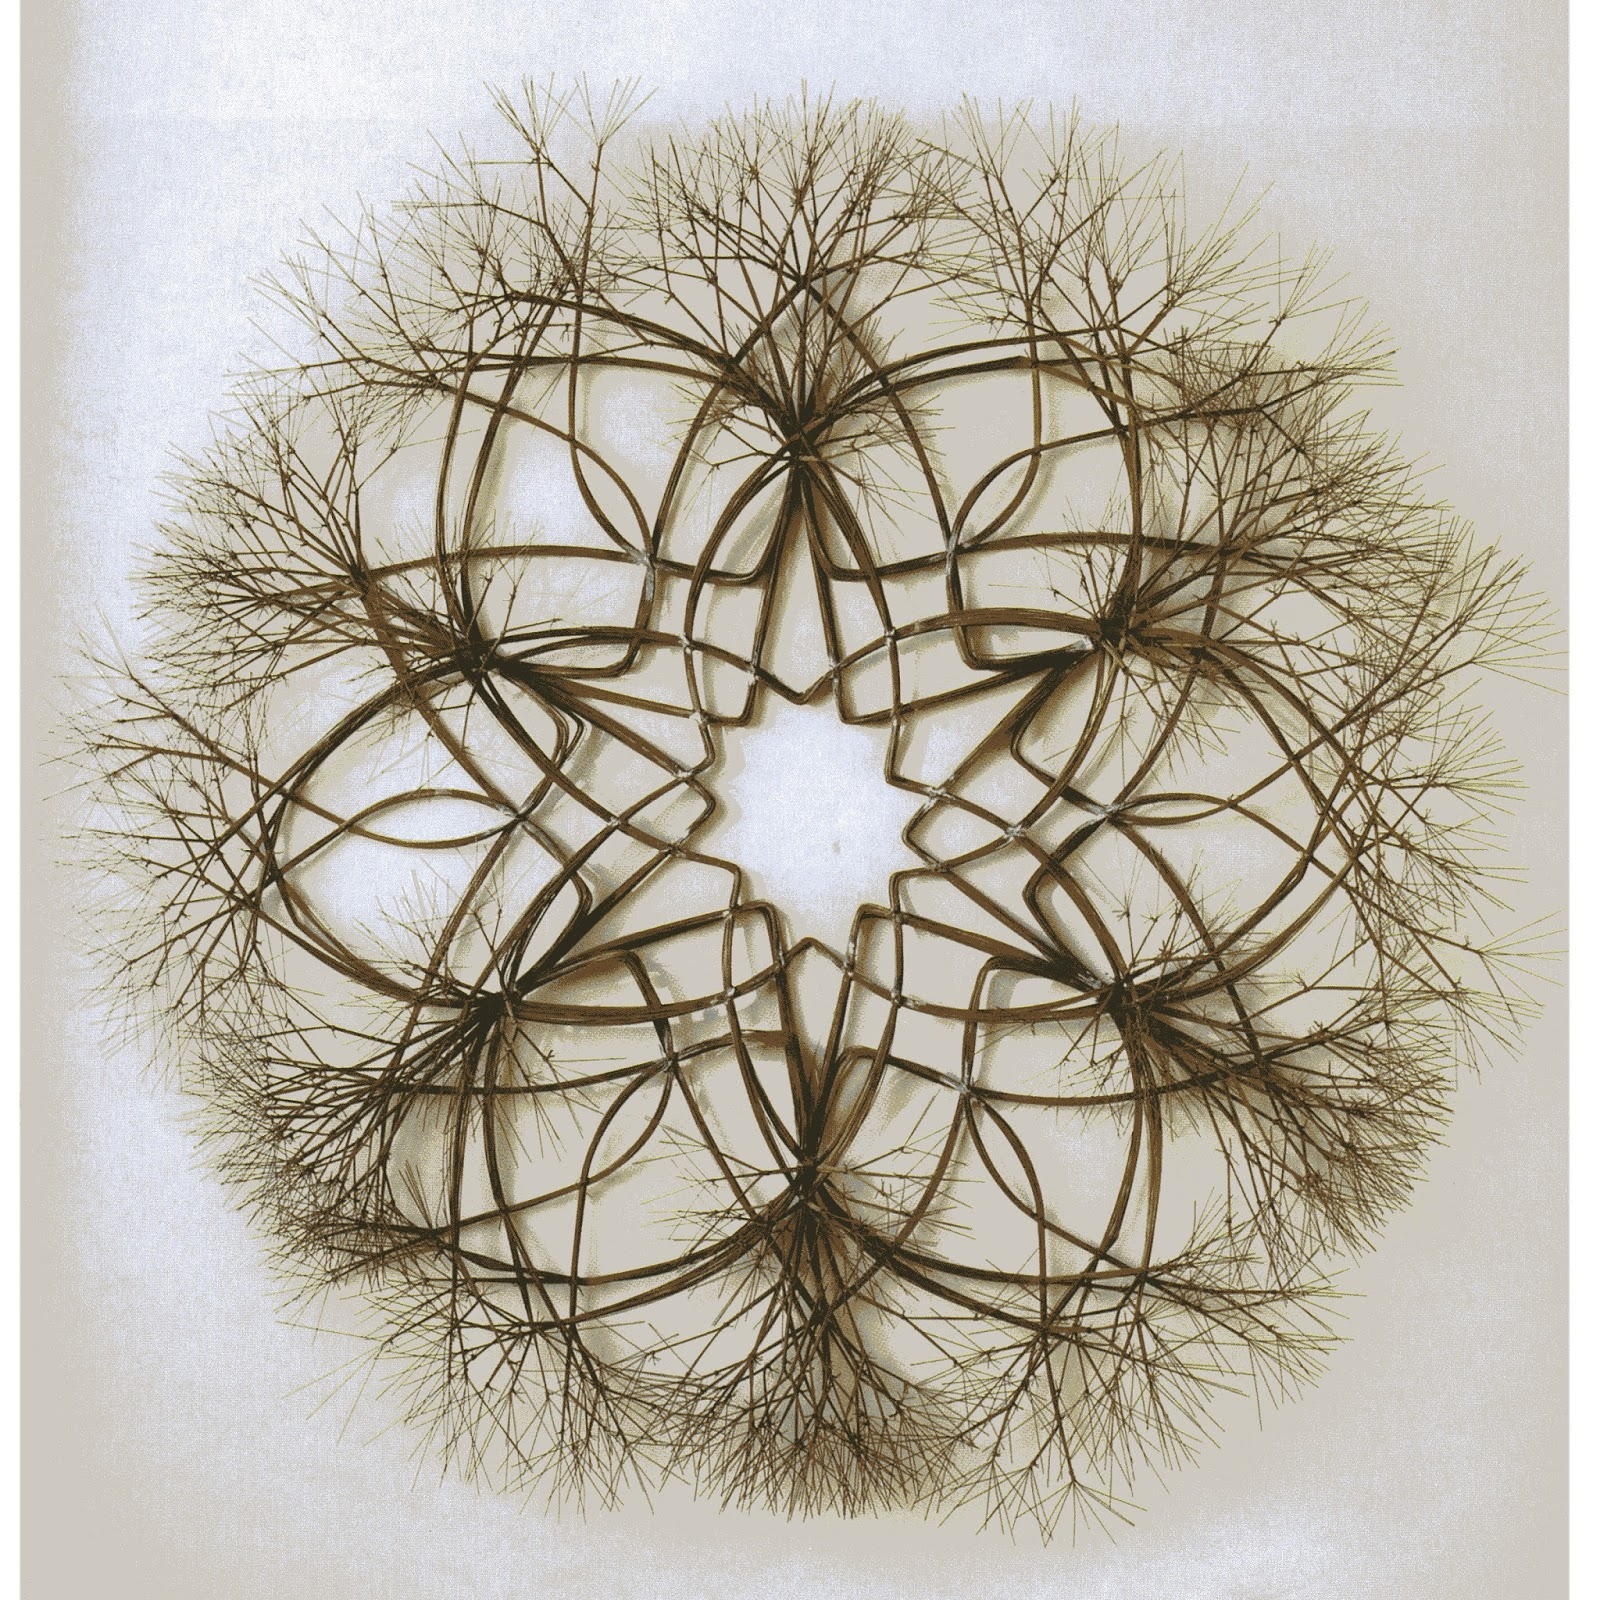 California Fibers Blog: In Remembrance of Artist Ruth Asawa